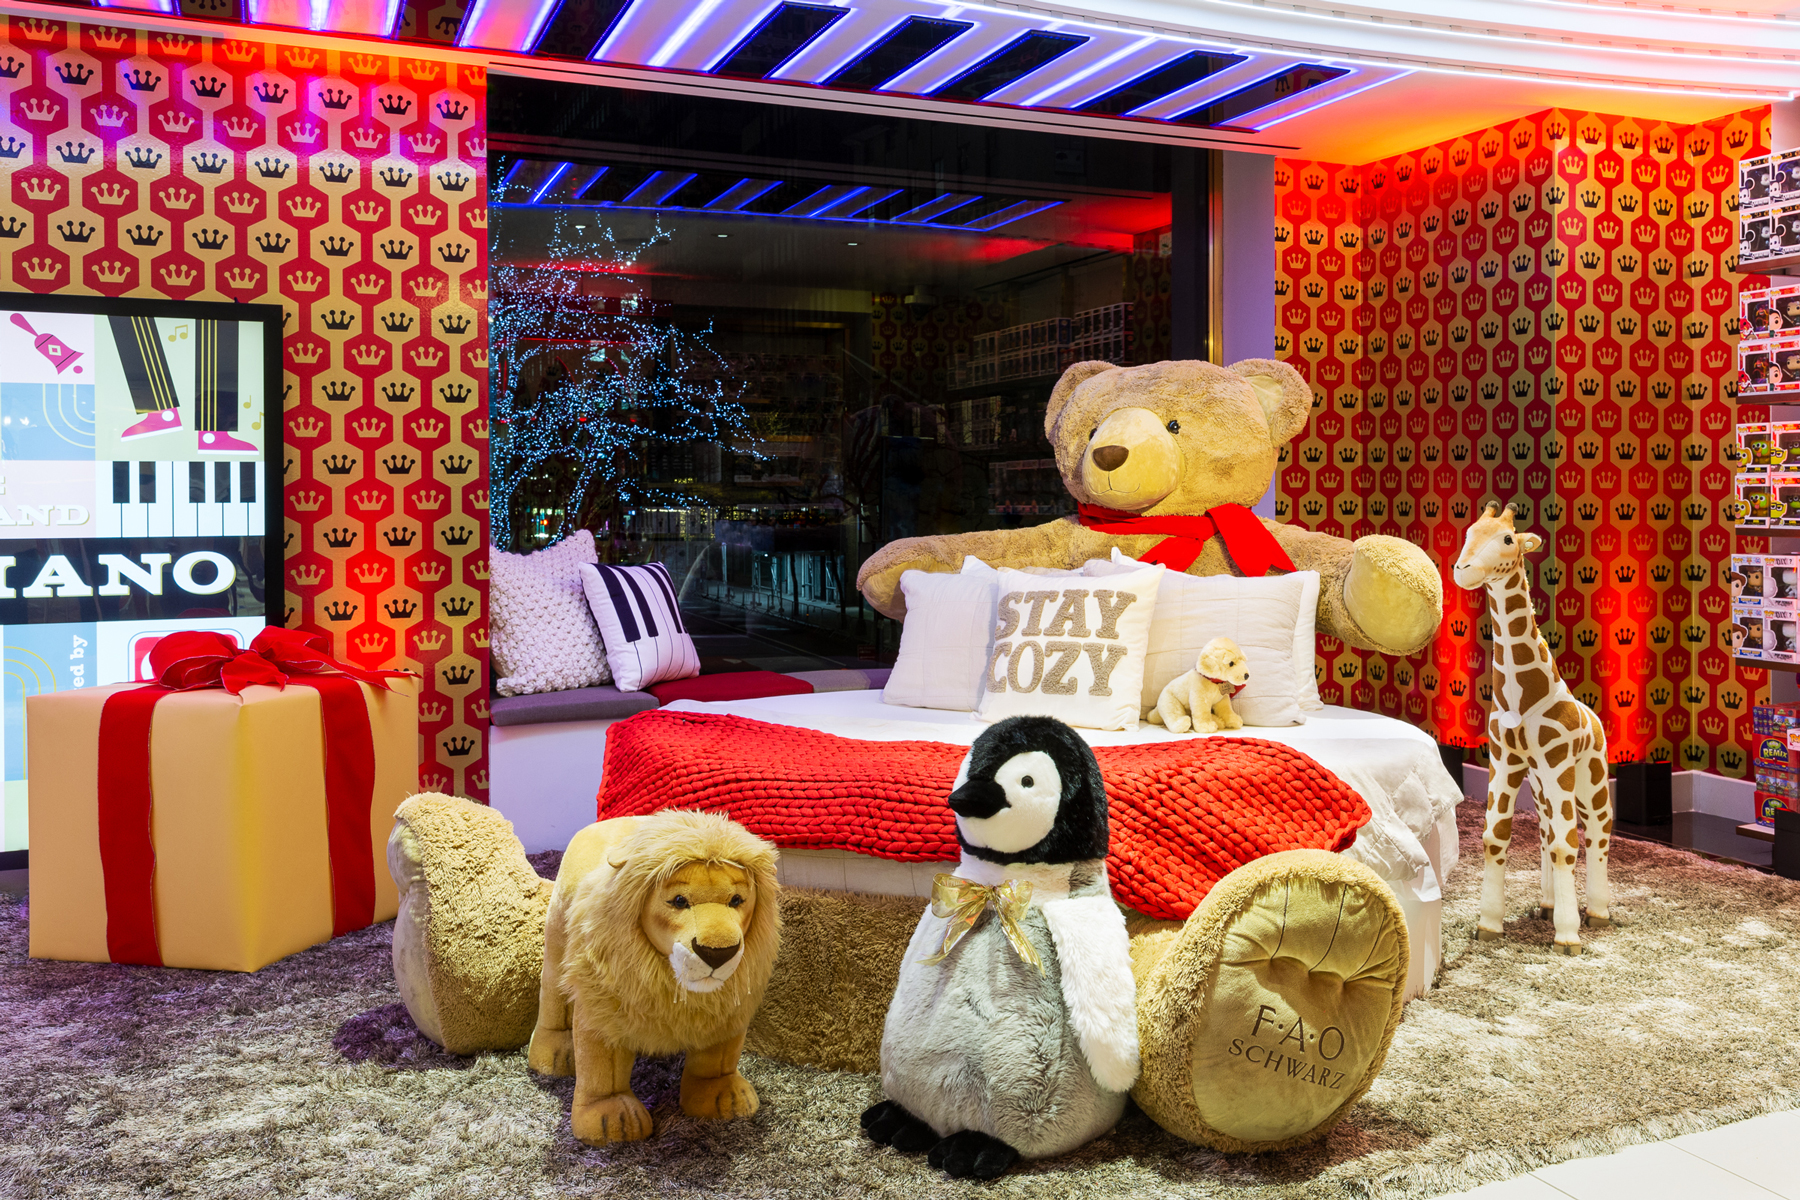 inside of fao schwarz, circle bed and giant stuffed animals